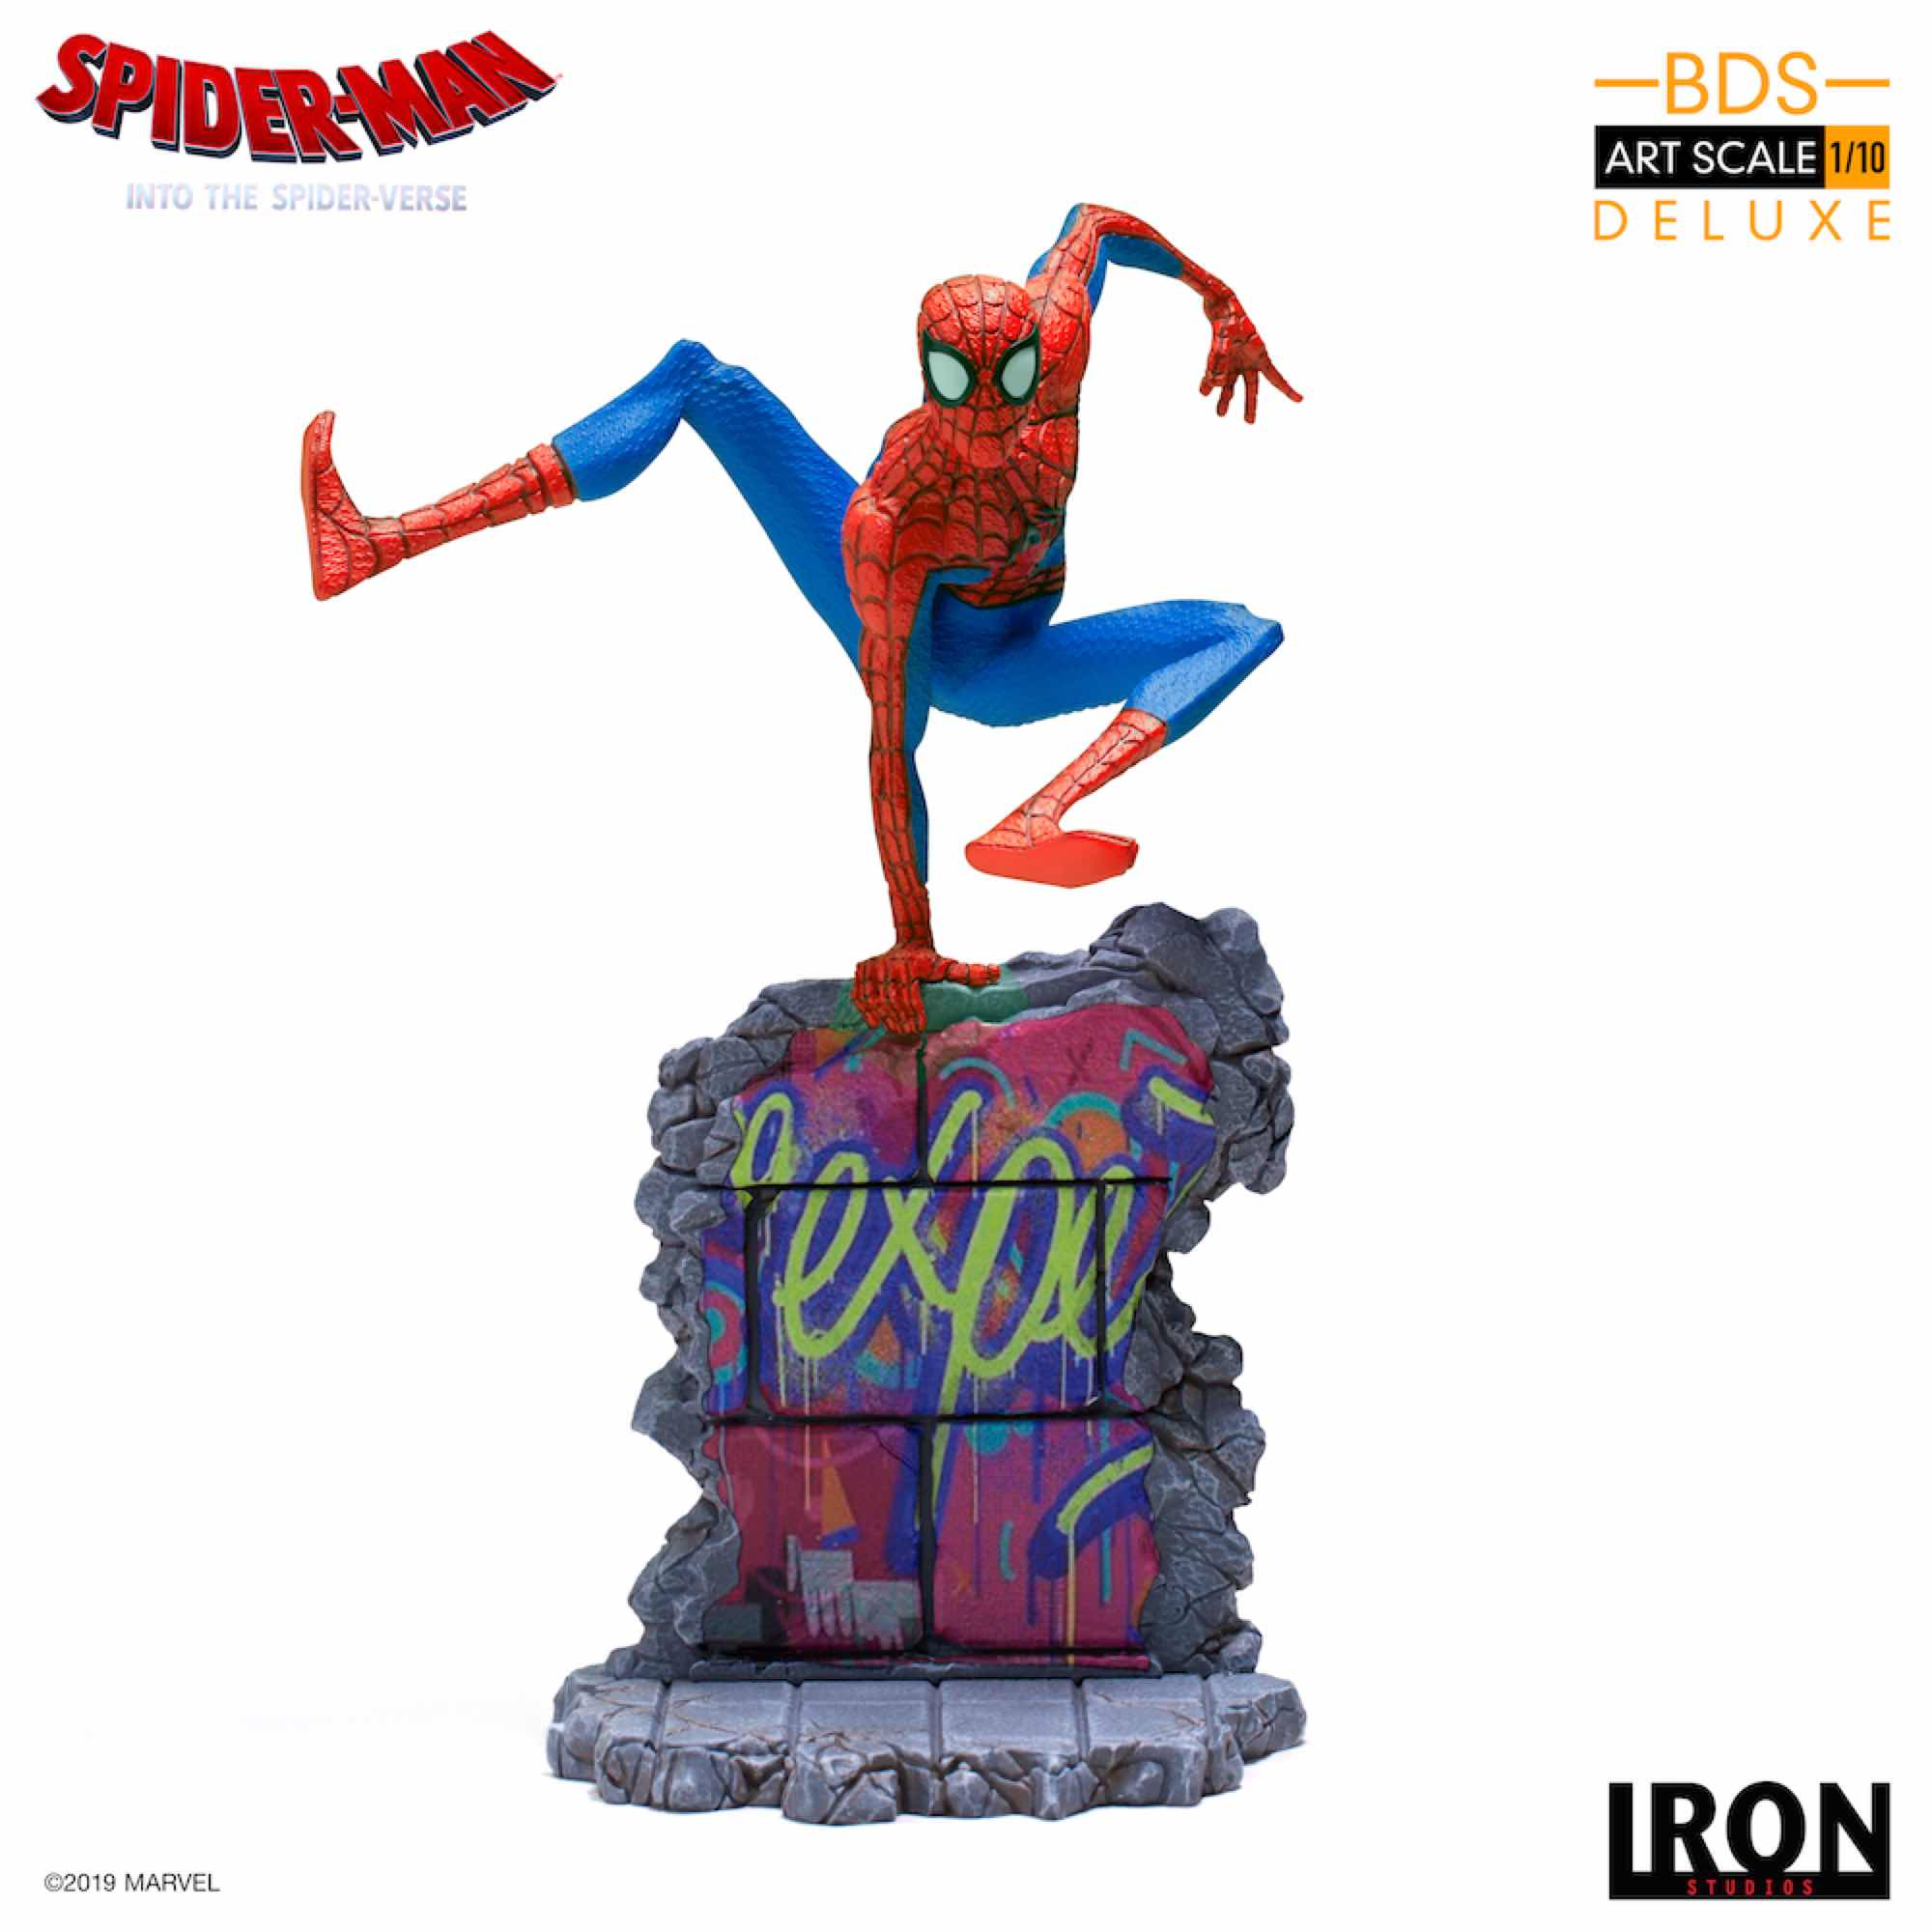 PETER B. PARKER FIG 21 CM BDS 1/10 ART SCALE IRON STUDIOS SPIDER-MAN INTO THE SPIDER-VERSE